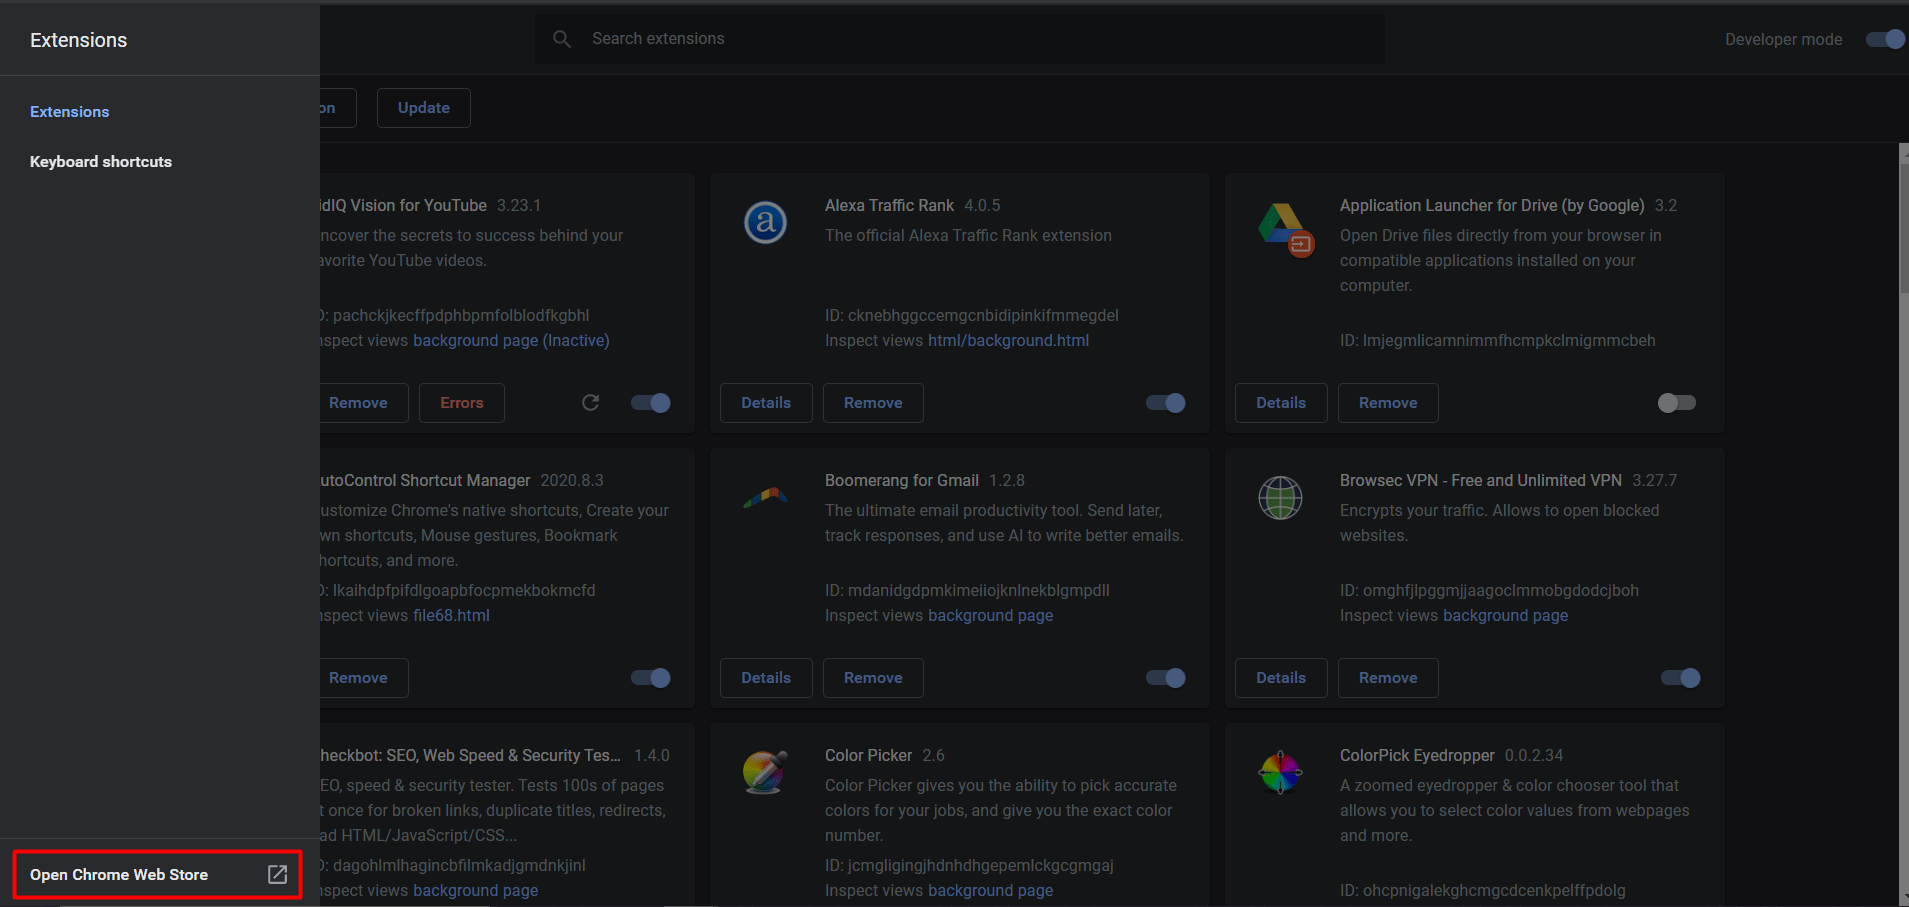 chrome extension page